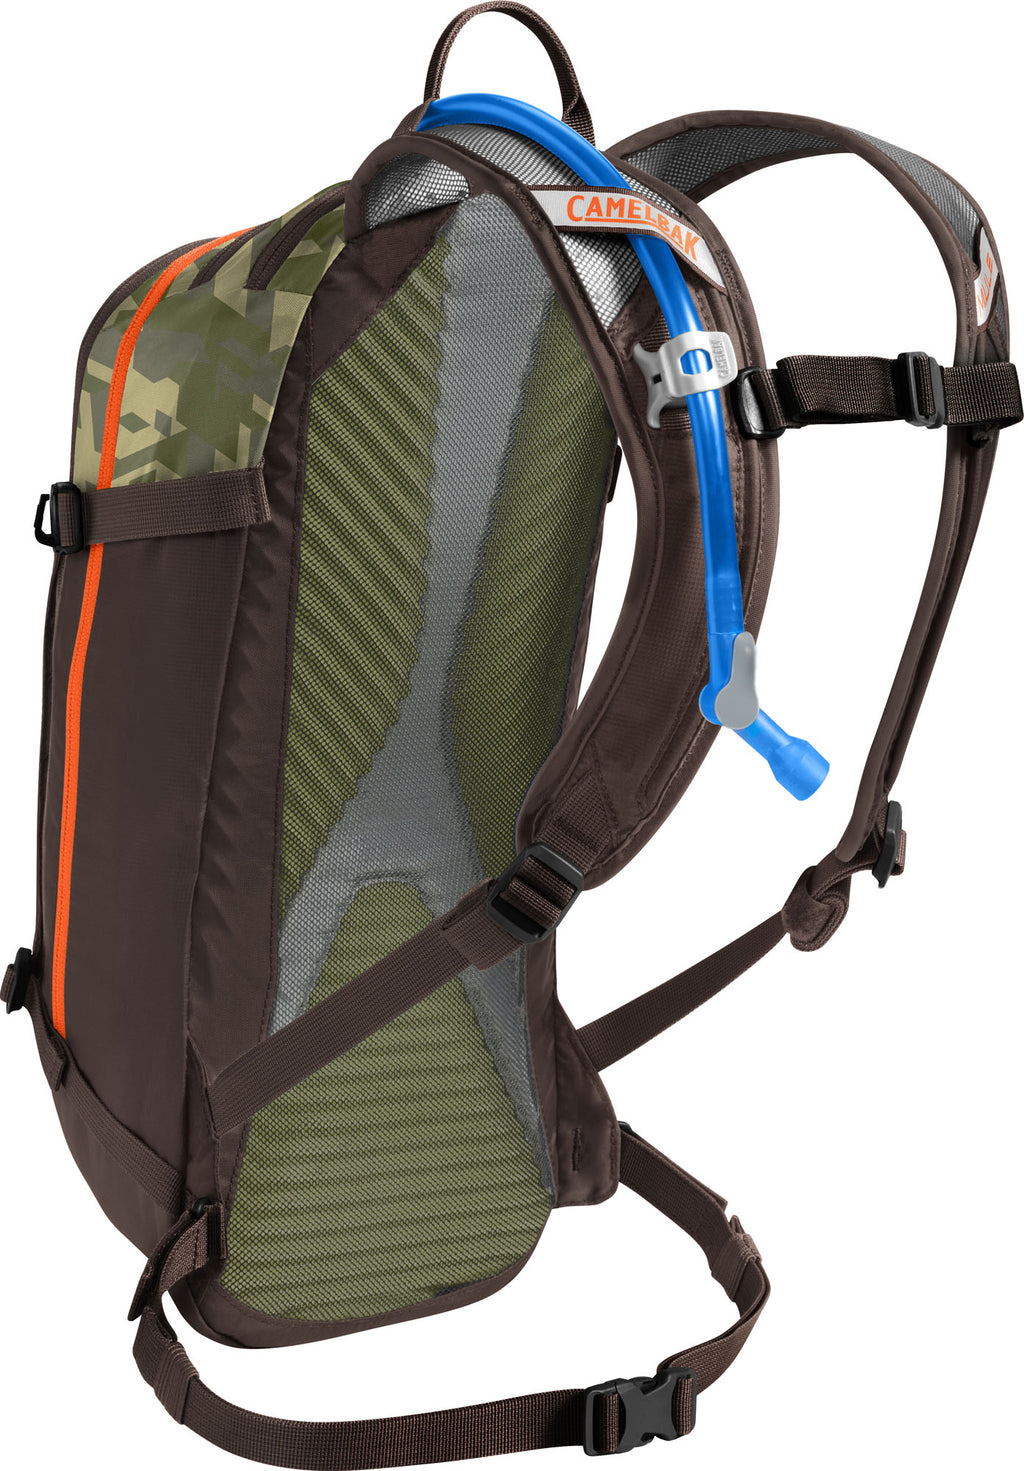 CamelBak M.U.L.E Mountain Biking Hydration Pack Brown Seal/Camelflage